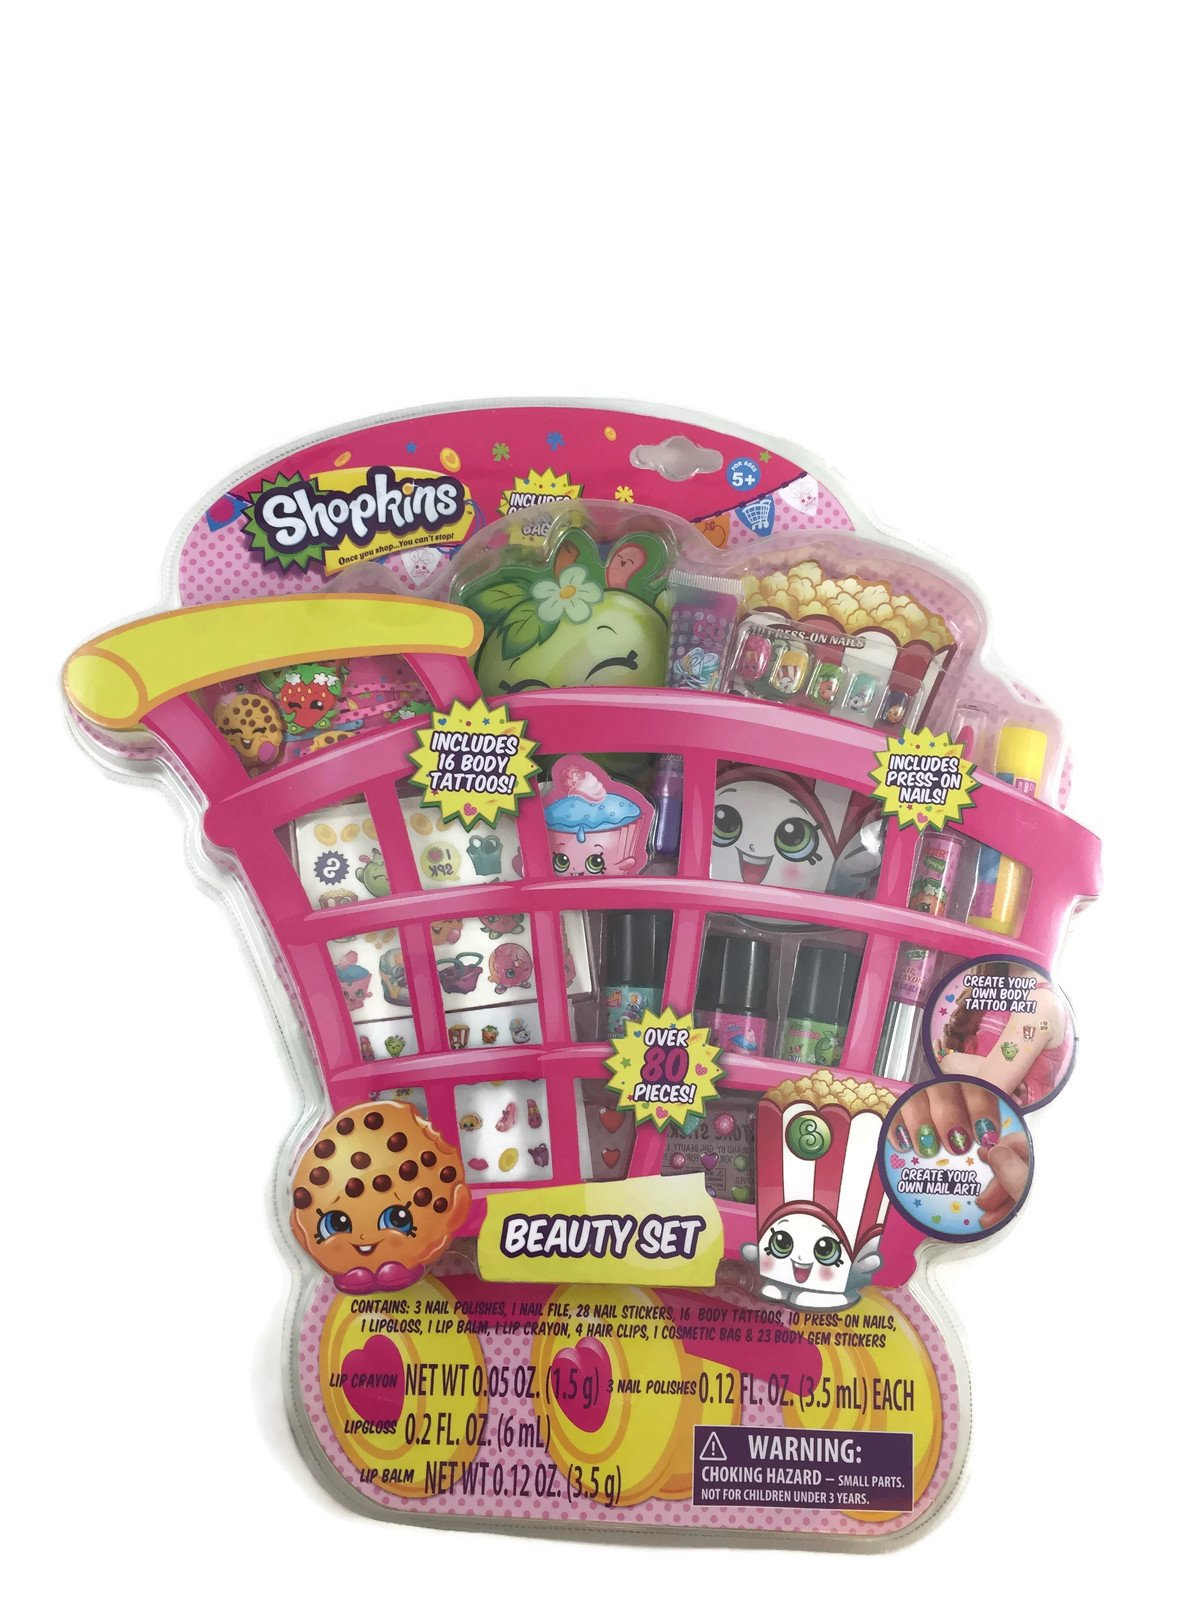 Shopkins Beauty Set - Over 80 Pieces Included by Shopkins (Image #1)